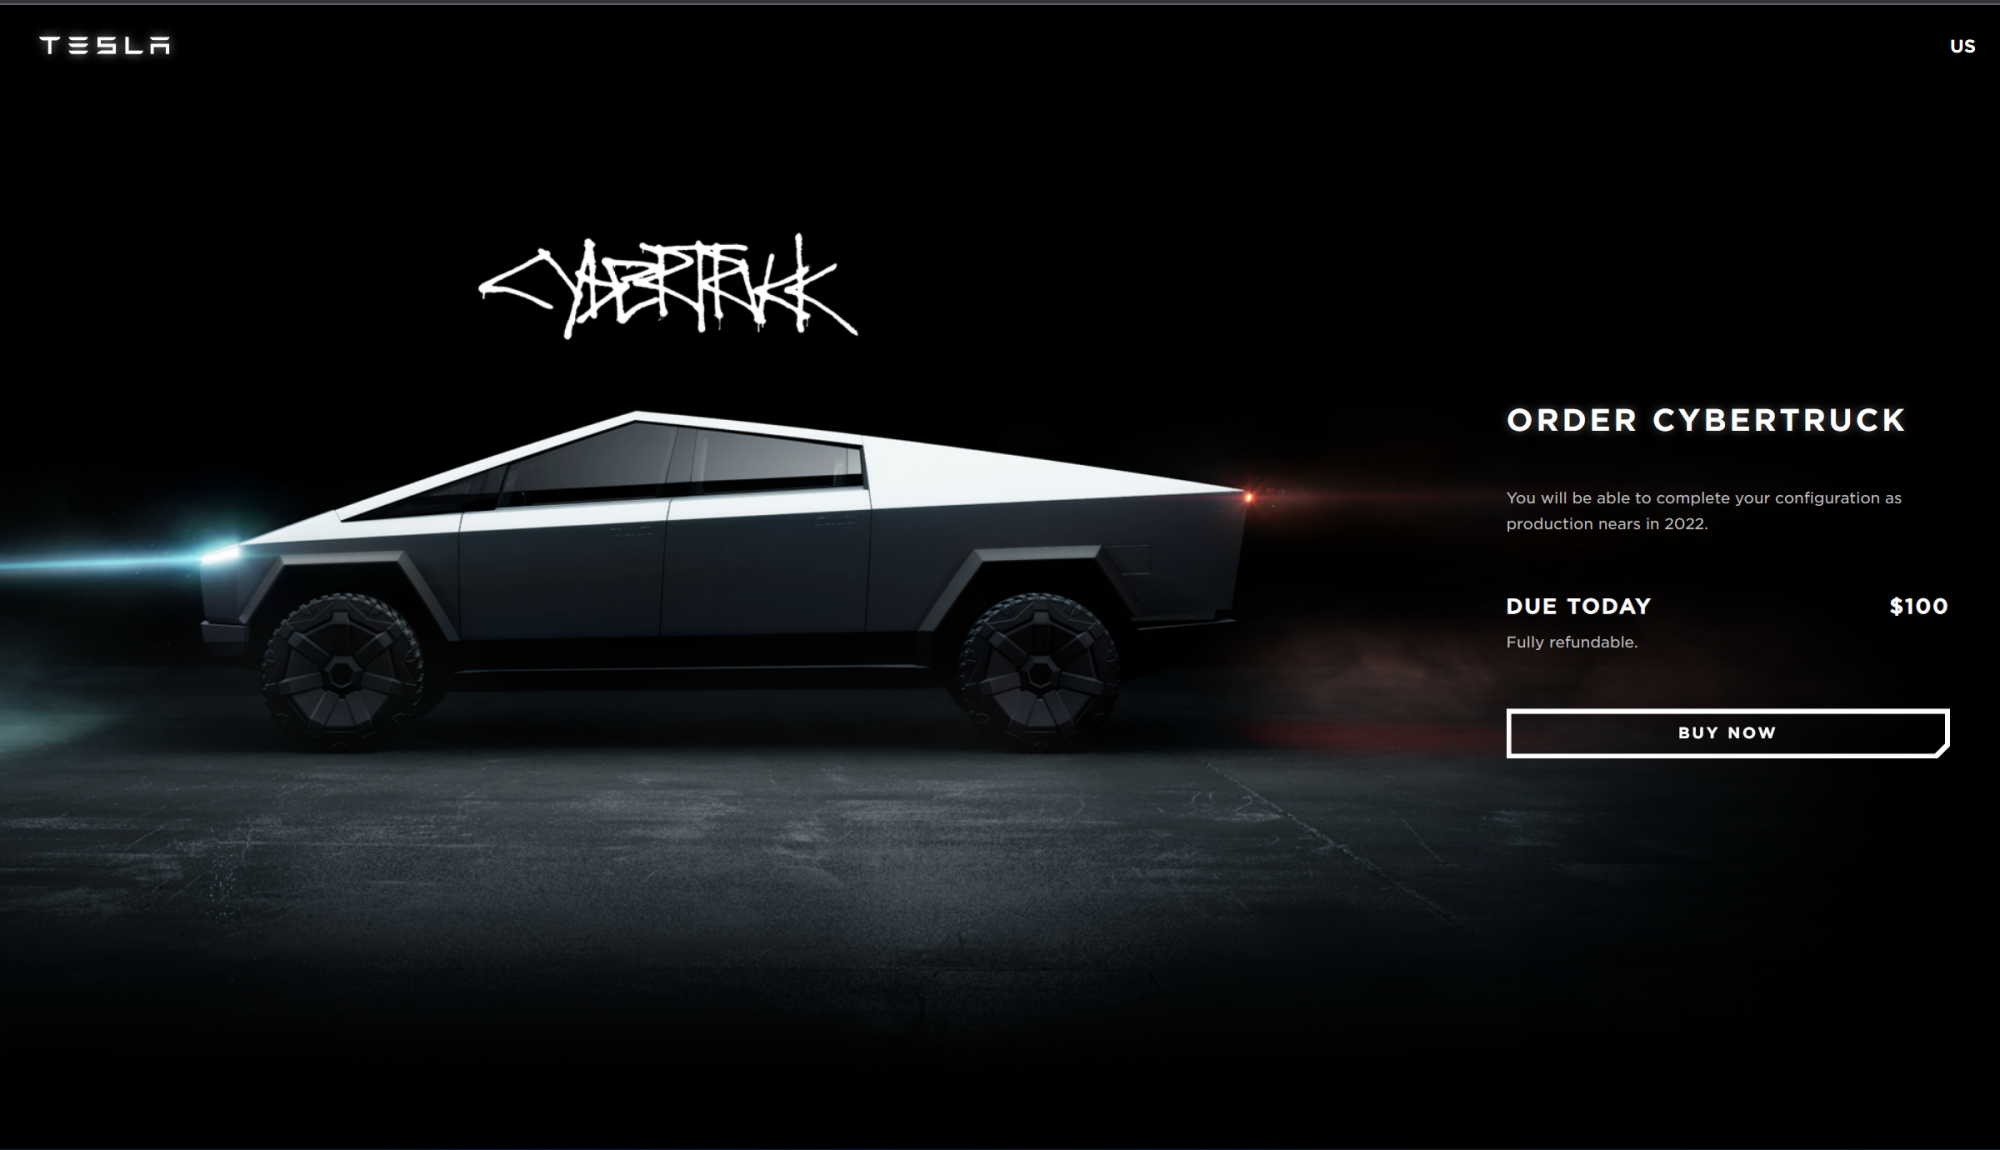 According to the Cybertruck order page, you'll be able to set up a configuration later.